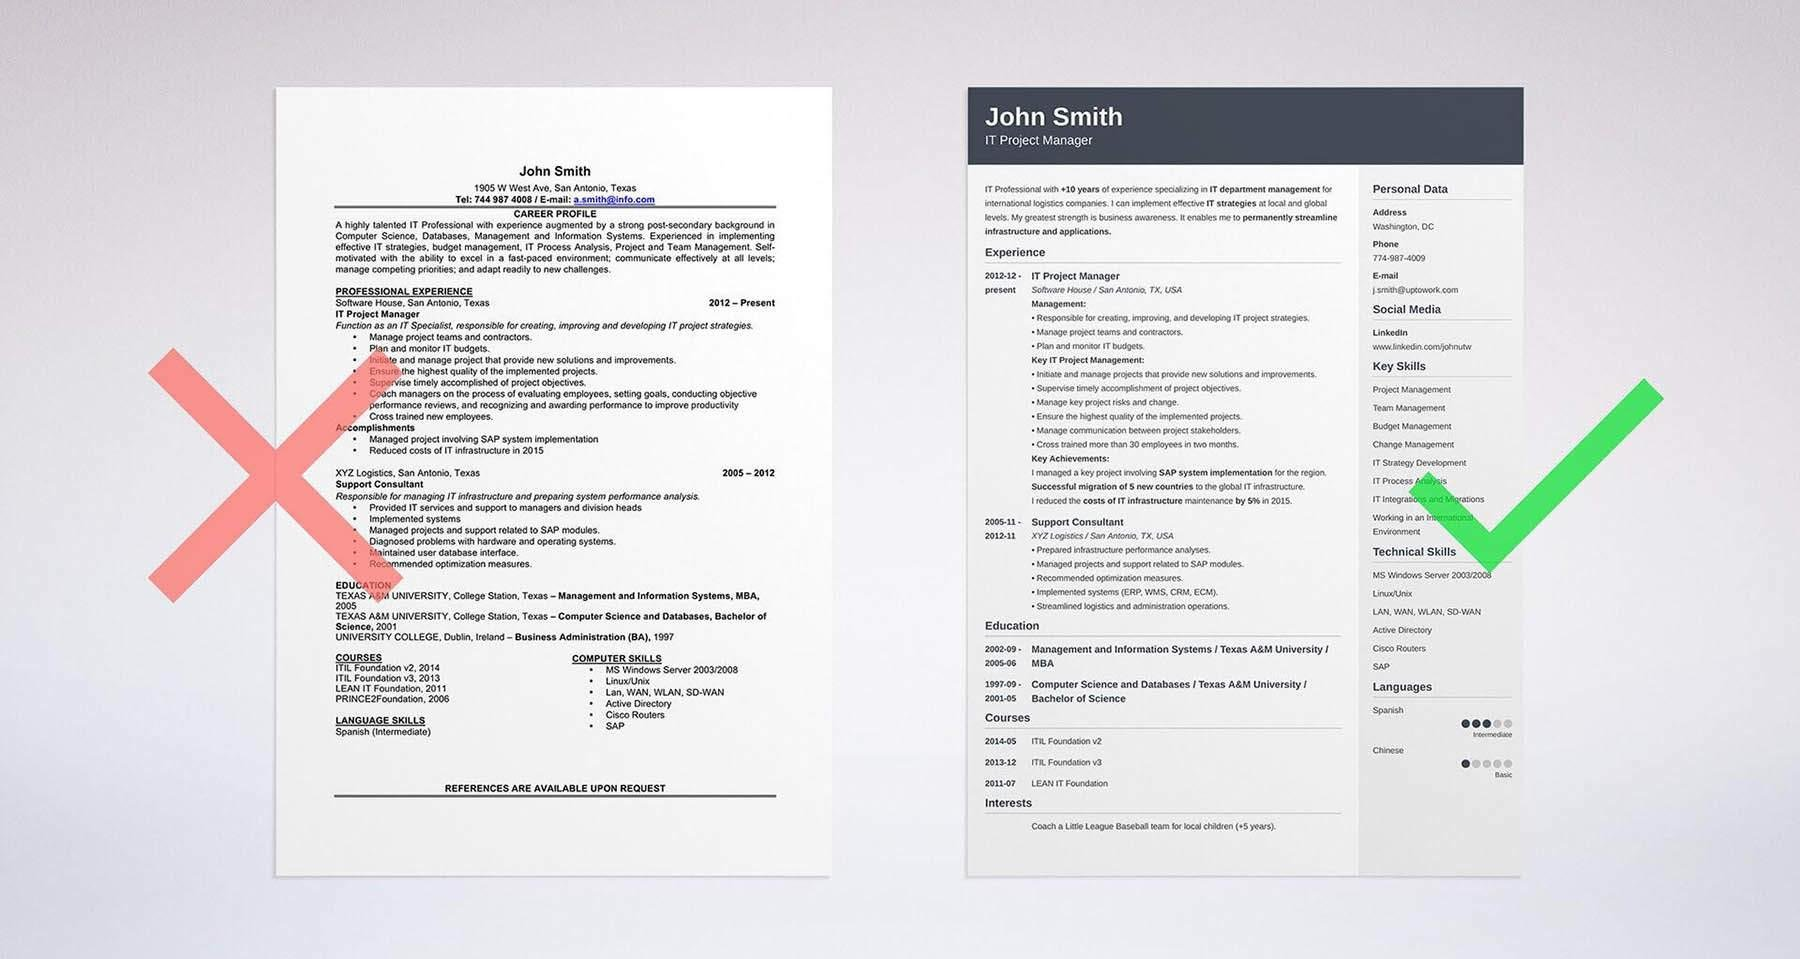 Amazing Highlight Your Resume Objective With Our Templates   Create Your Resume In  5 Minutes Here. Regard To Objective Examples For Resumes